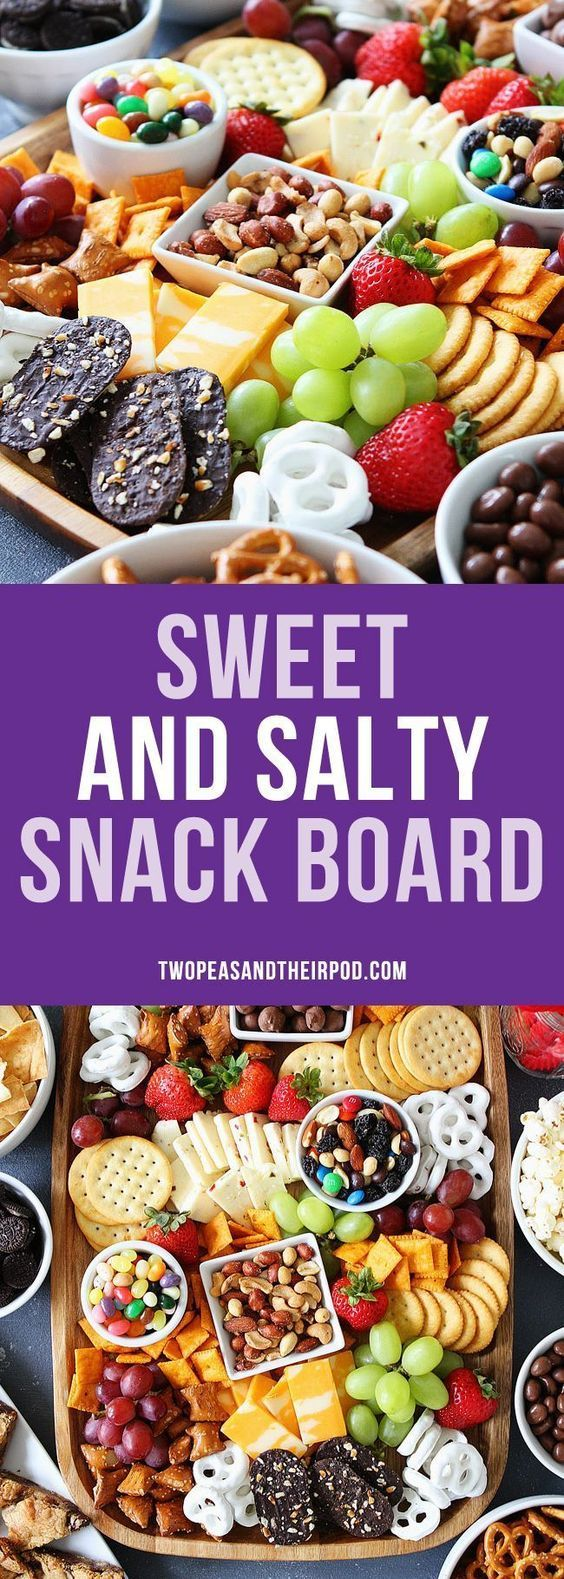 How to Make a Sweet and Salty Snack Board for parties! This snack spread is perfect for game day or any party. The perfect party food for easy entertaining. #party #entertaining #snacks #movienightsnacks